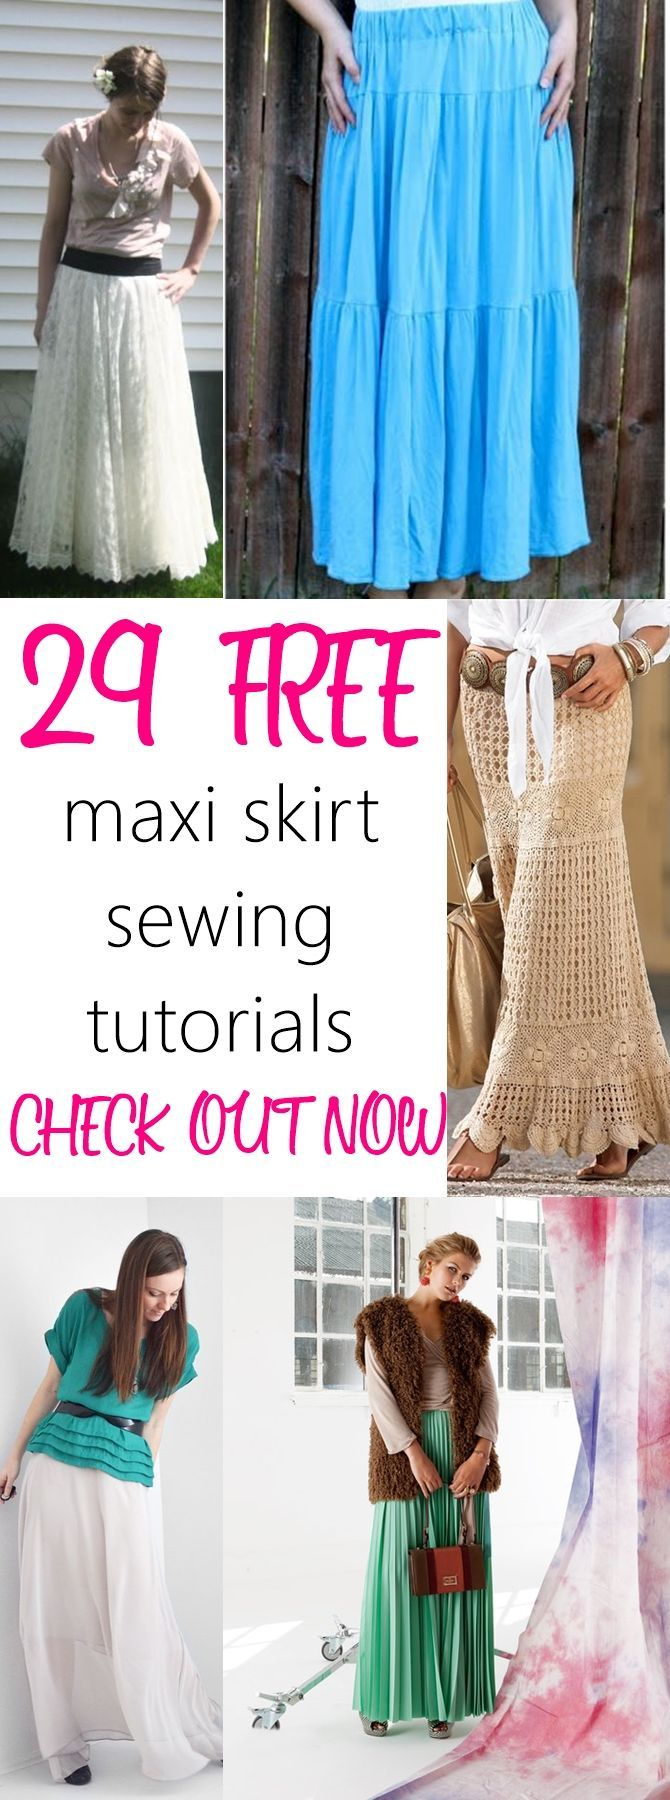 29 FREE maxi skirt sewing tutorials on http://sewsomestuff.com. AWESOME list of maxi skirts to sew this summer. LOVE THEM ALL. Such a beautiful collection. CHECK OUT NOW!